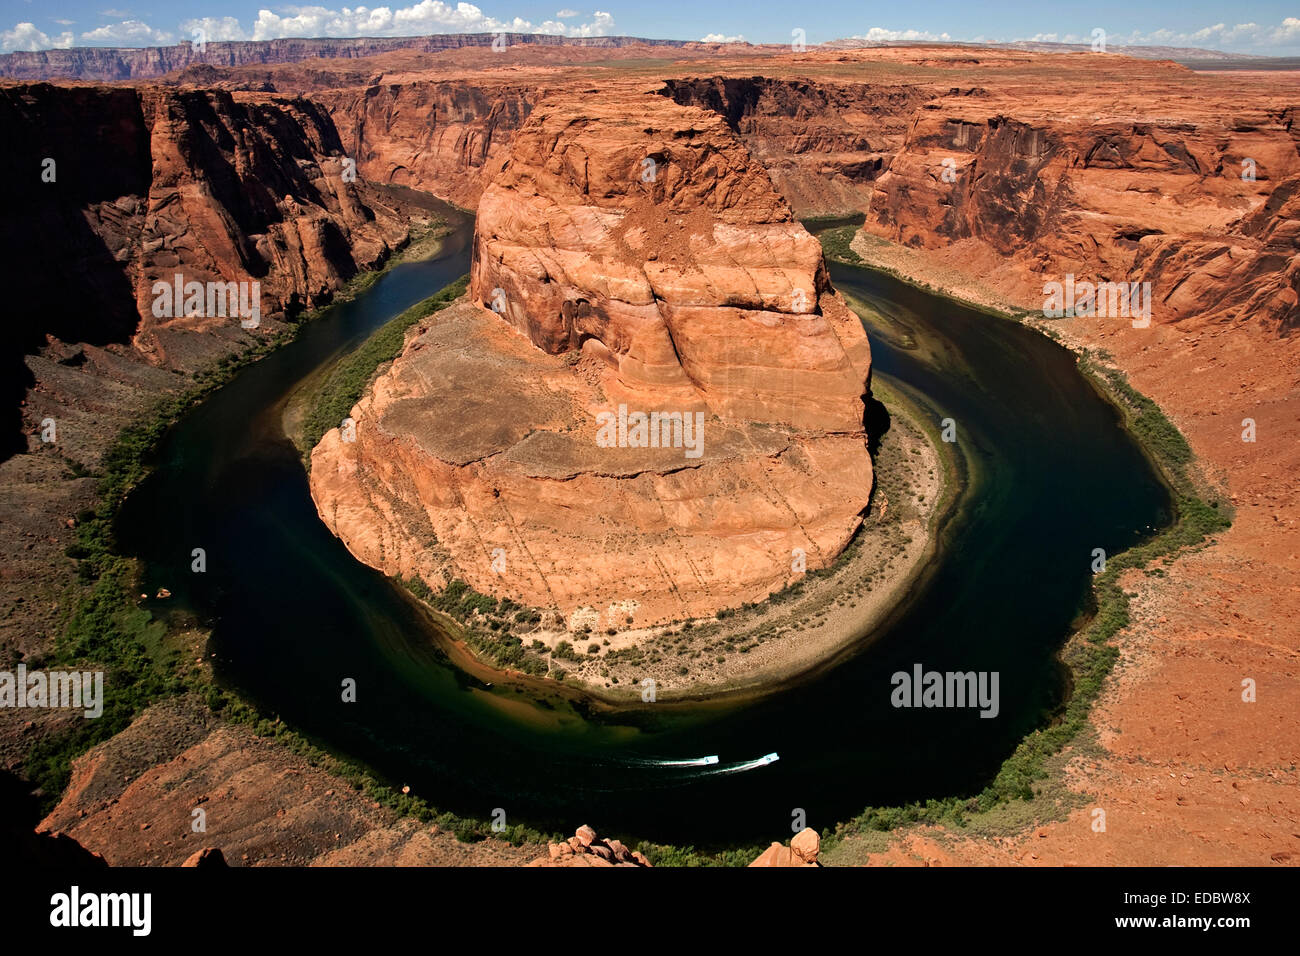 Curva a ferro di cavallo, Glen Canyon National Recreation Area, il Fiume Colorado, Arizona, Stati Uniti Immagini Stock